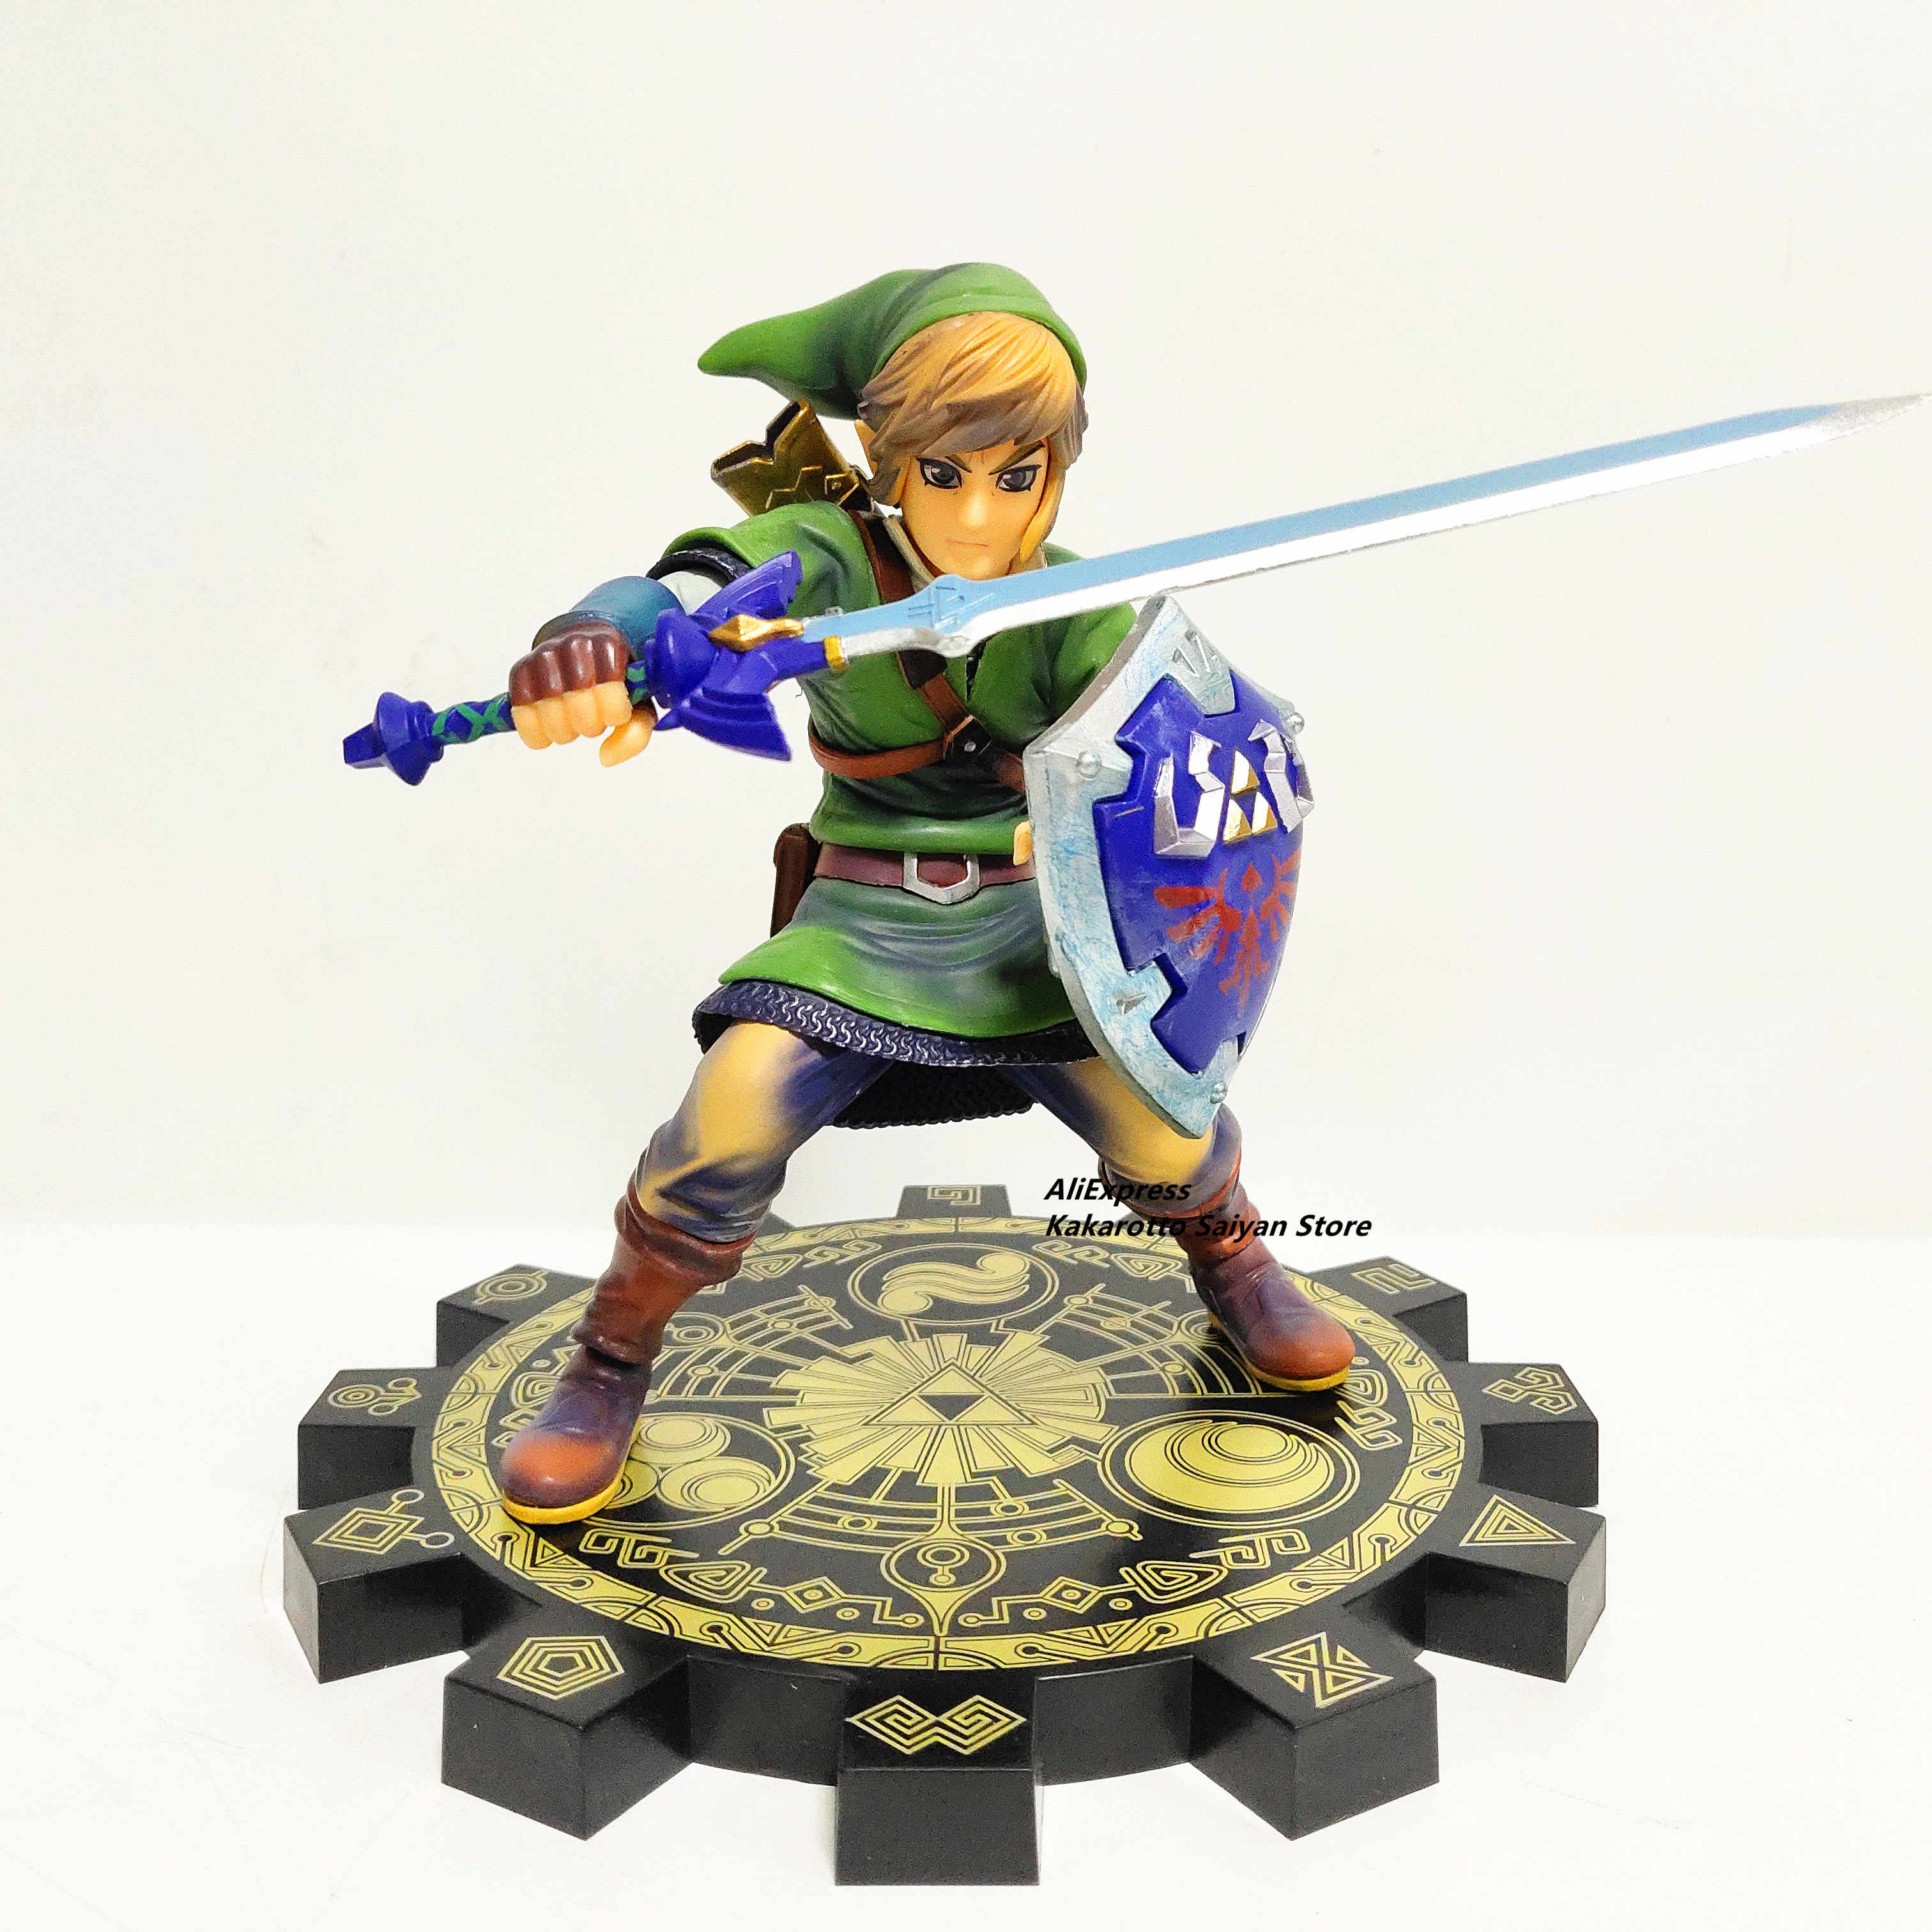 (Op Voorraad) zelda Skyward Sword Pvc Action Figure 1/7 Anime Game Toy Zelda Link Beeldje Collectible Model Toy